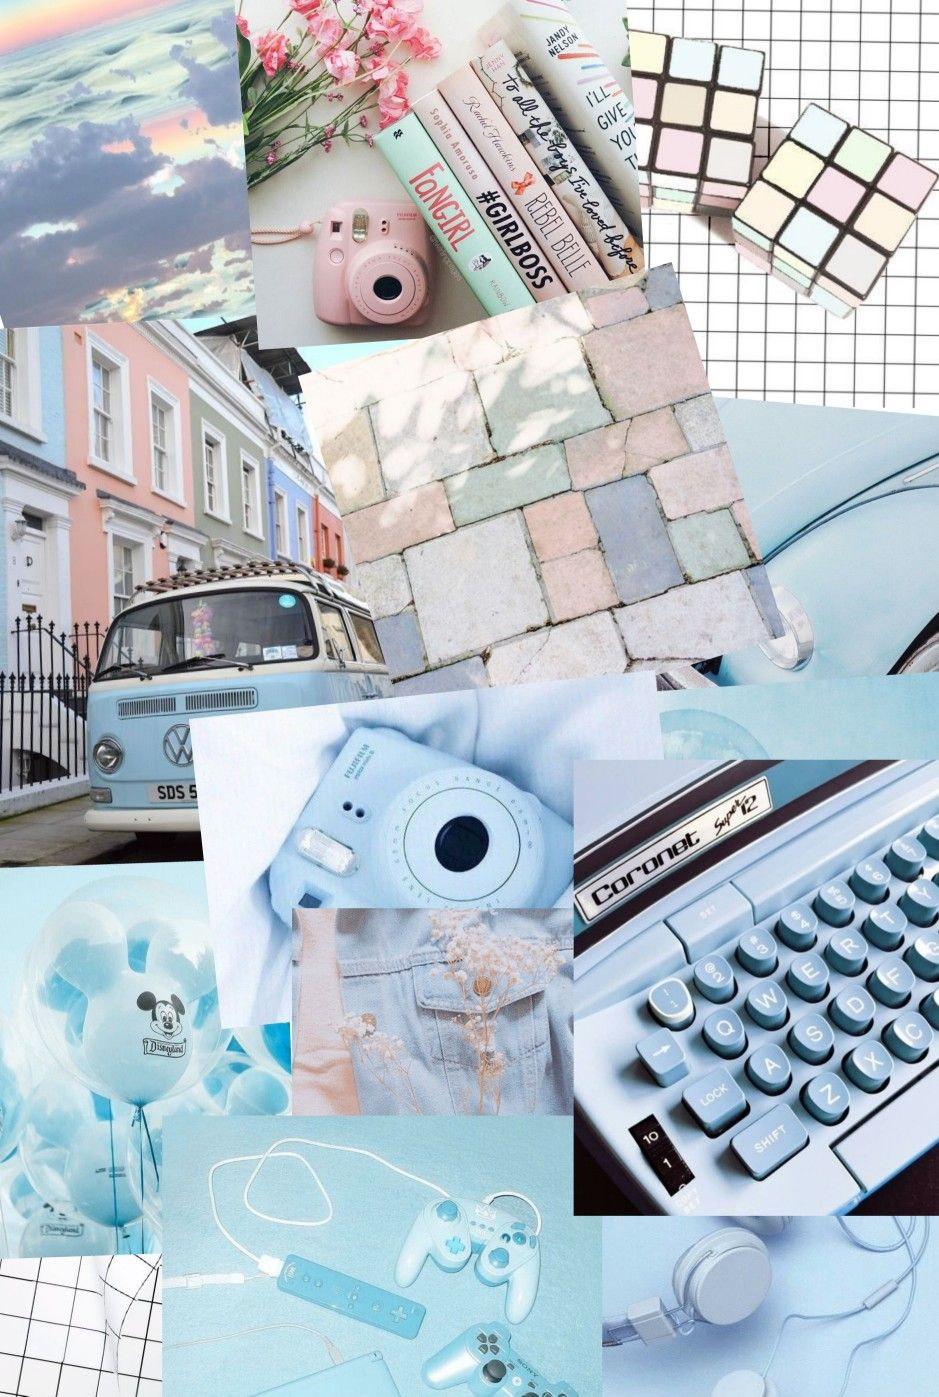 Unduh 76+ Background Tumblr Biru Terbaik